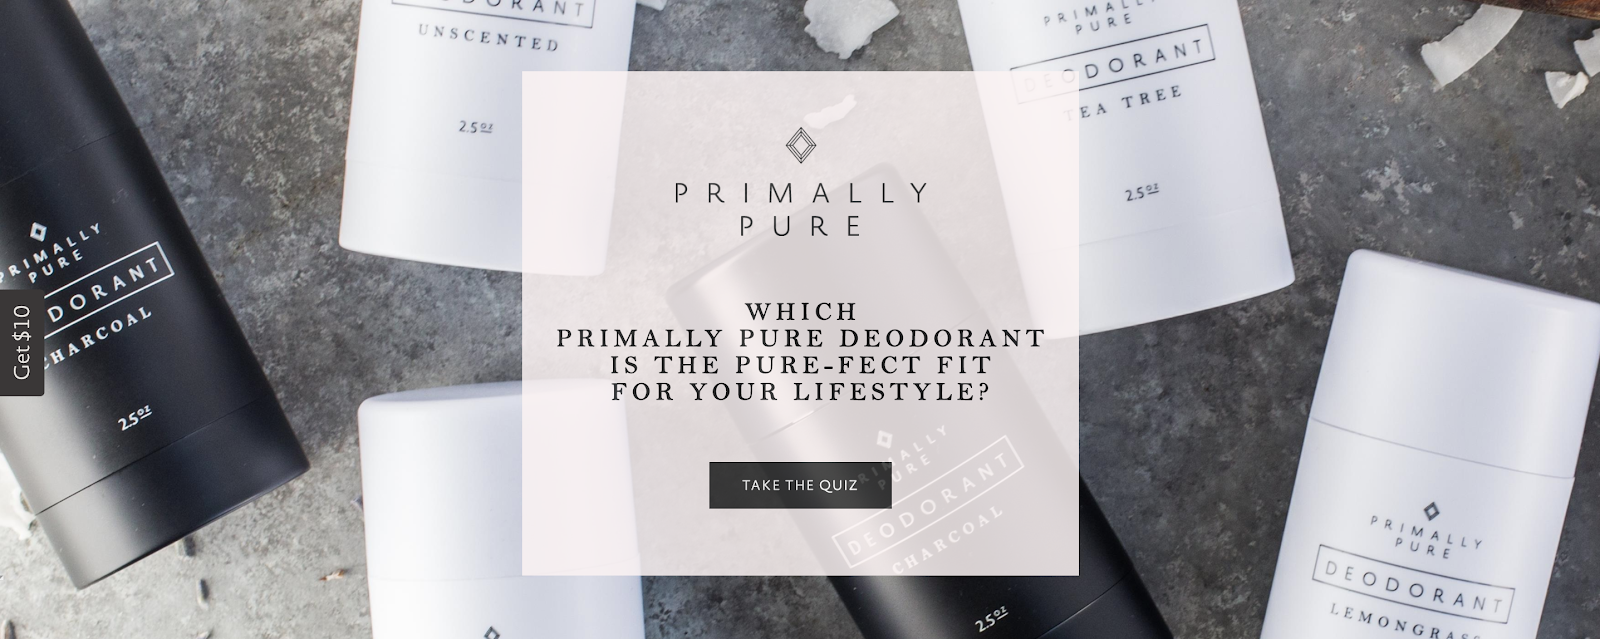 Primally Pure product recommendation quiz cover